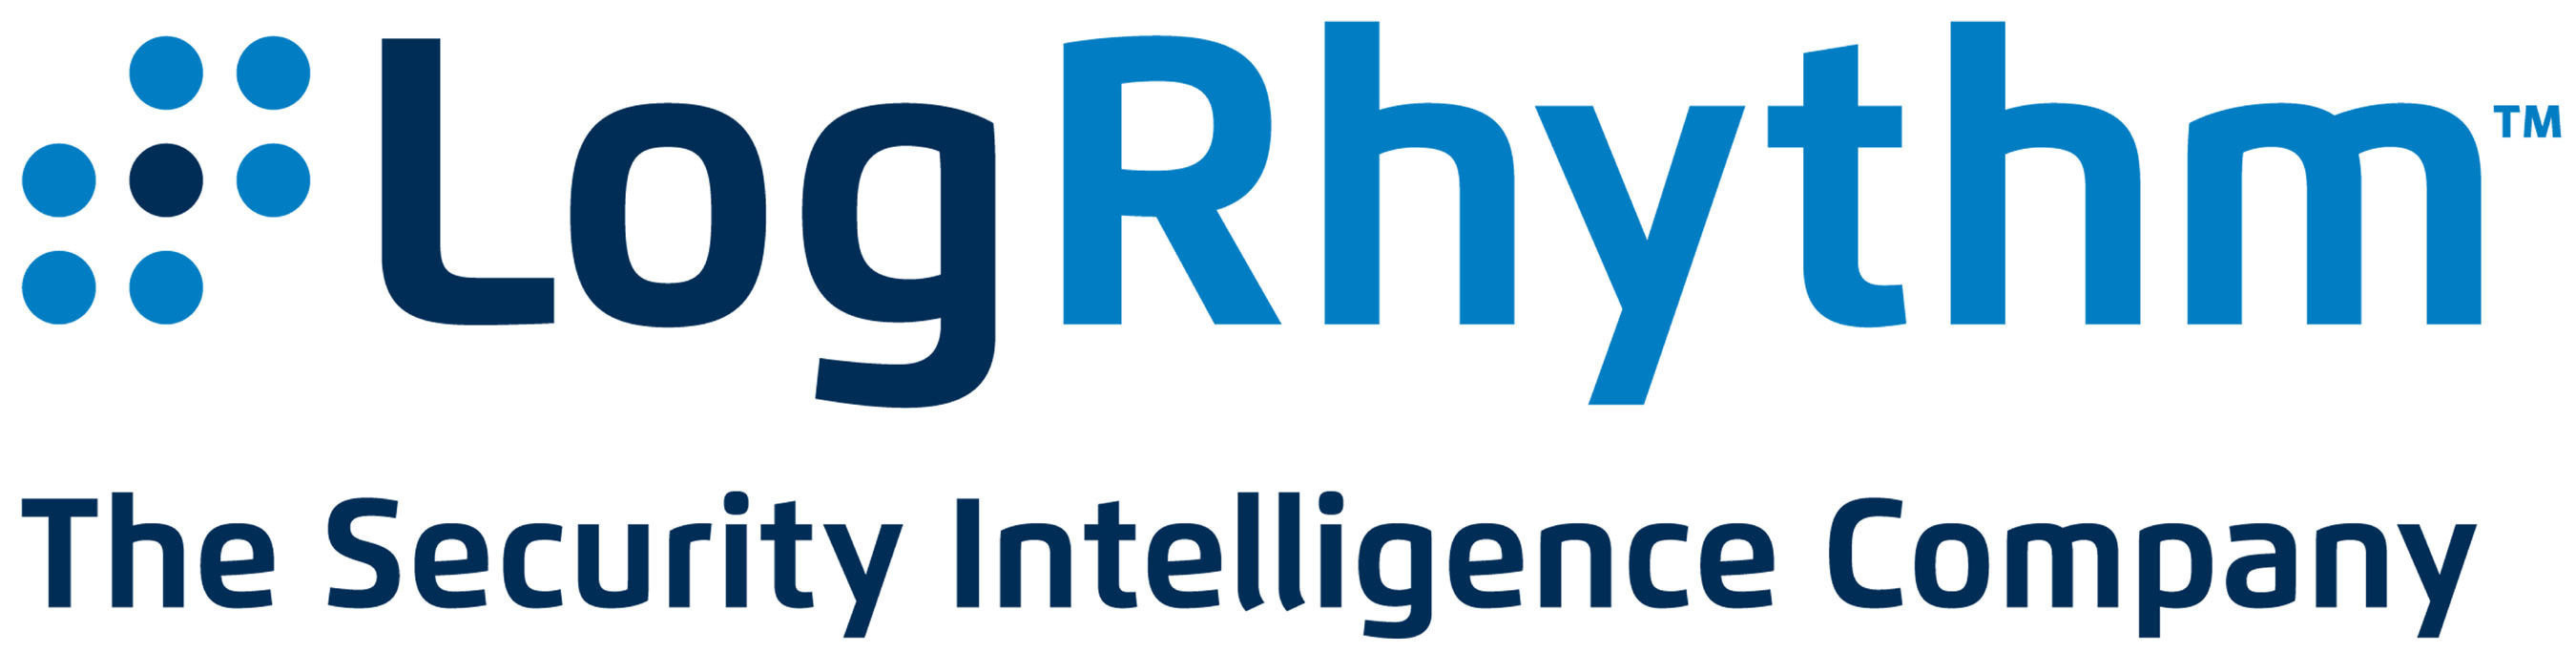 LogRhythm Experts Explain the Value of Actionable Threat Intelligence at the 2015 API Cybersecurity Conference and Expo